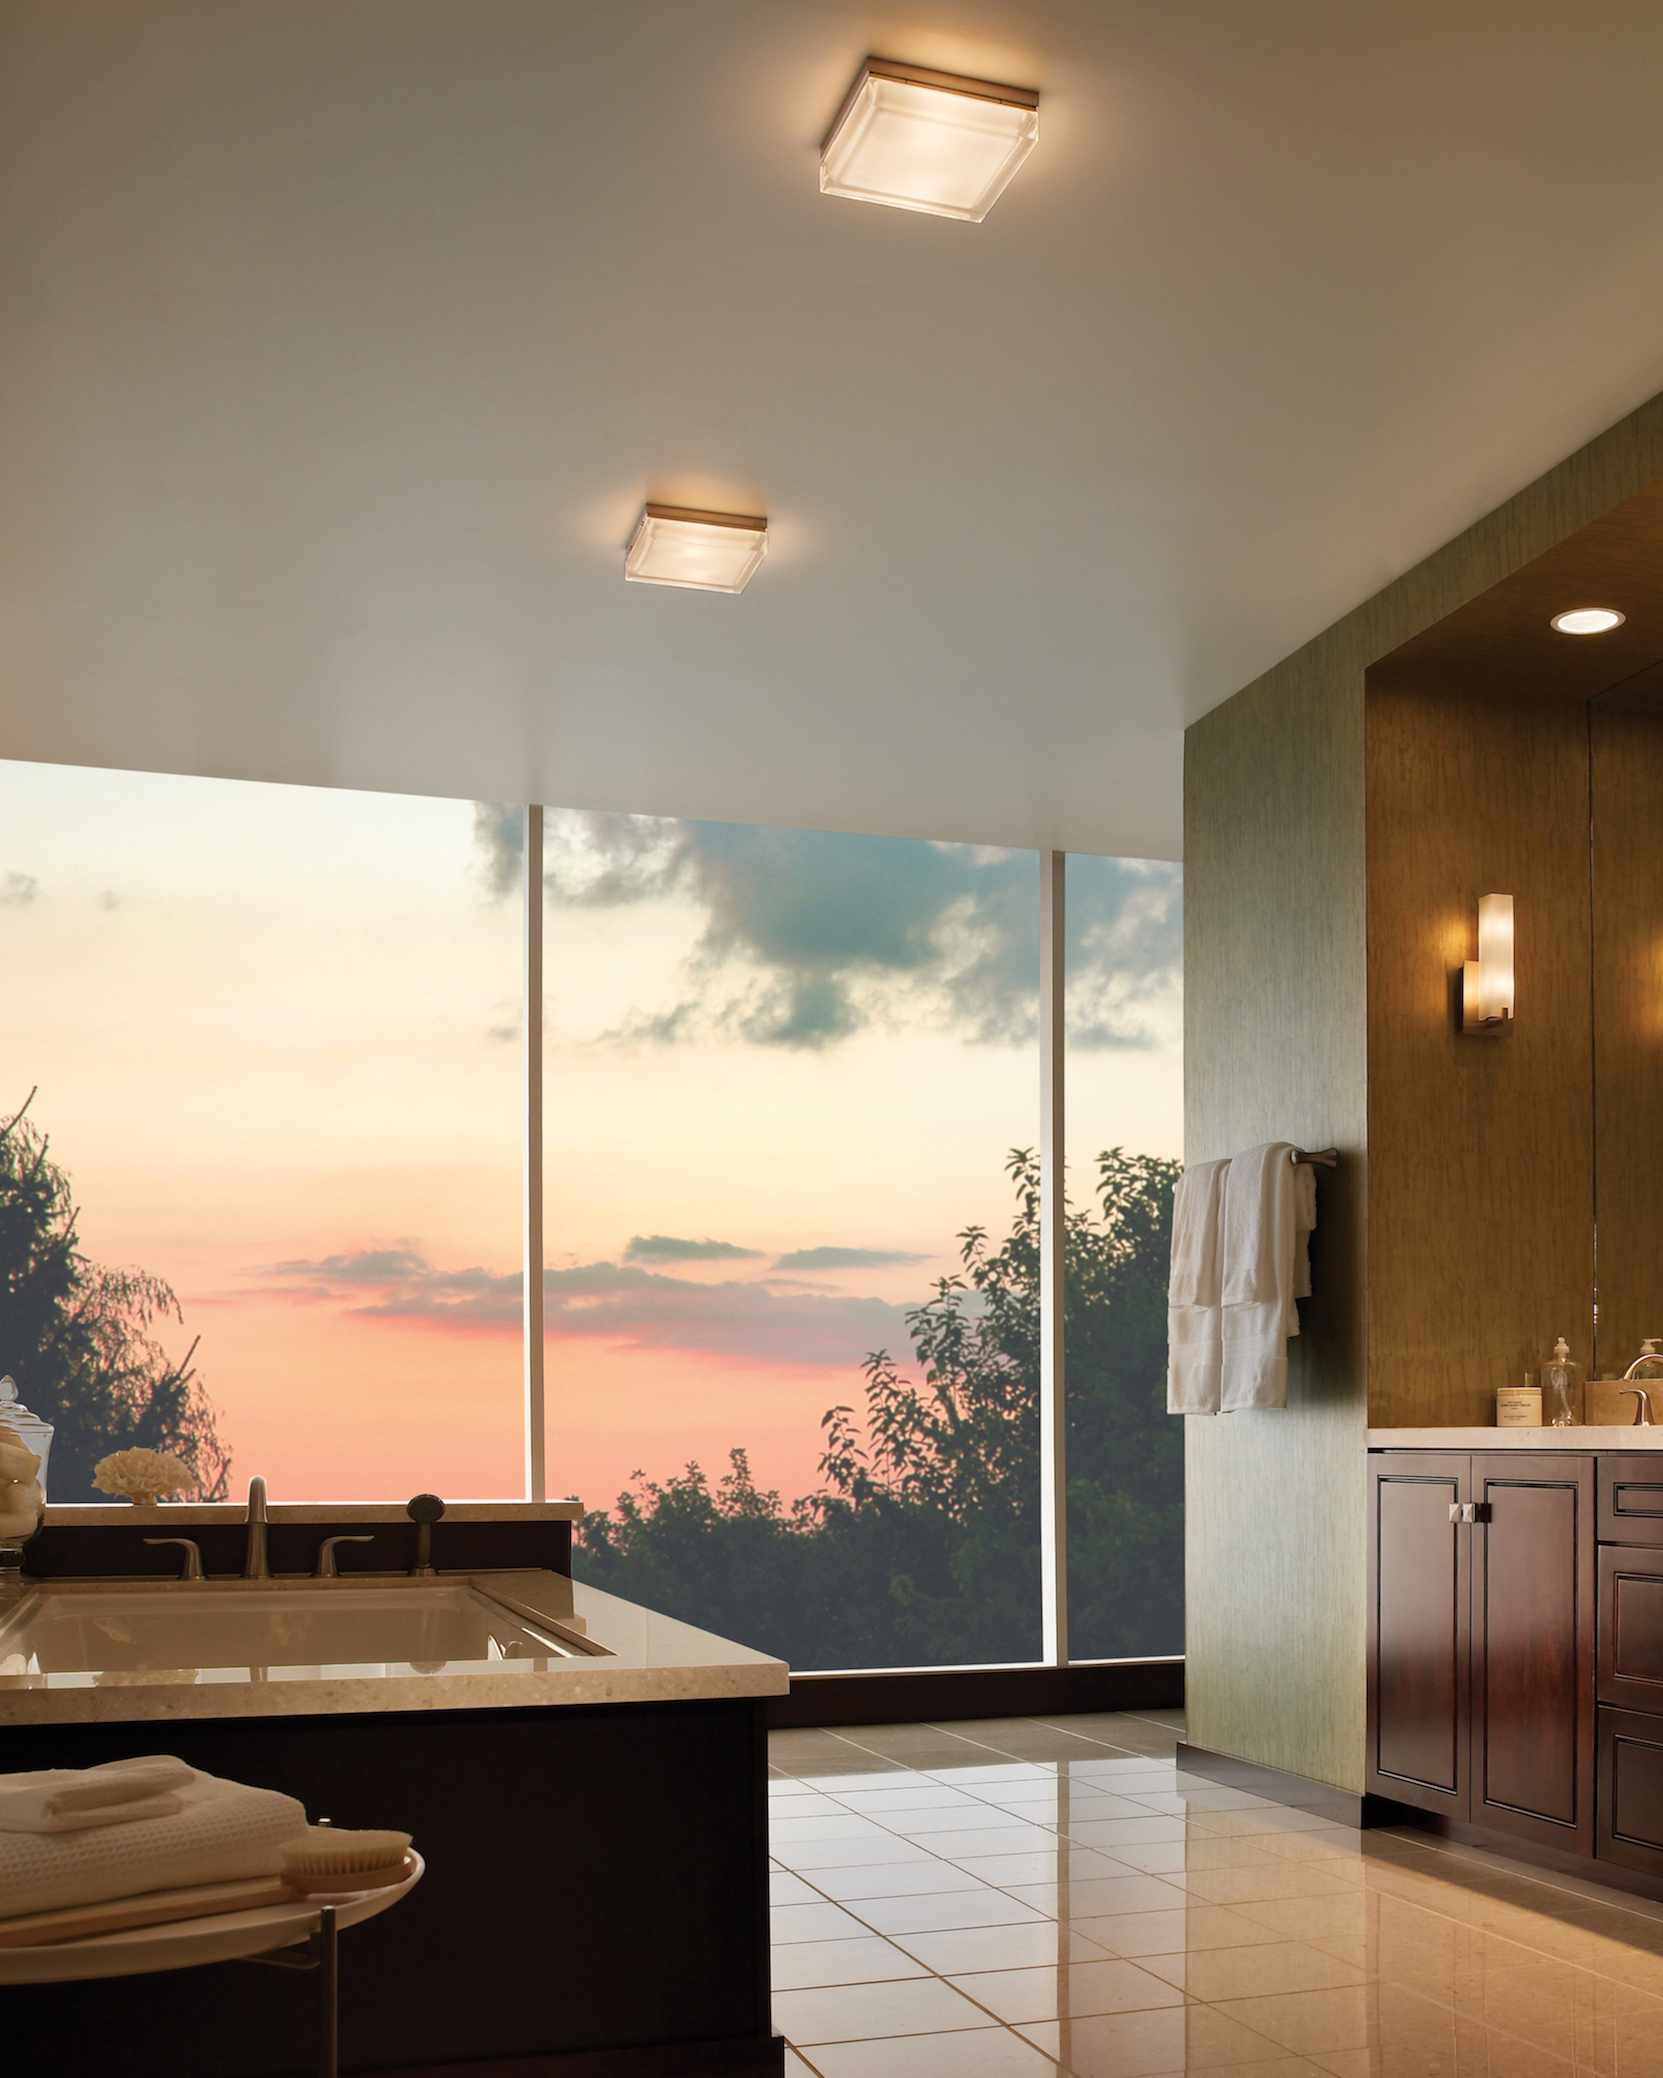 Bathroom Ceiling Sconces bathroom lighting buying guide | design necessities lighting